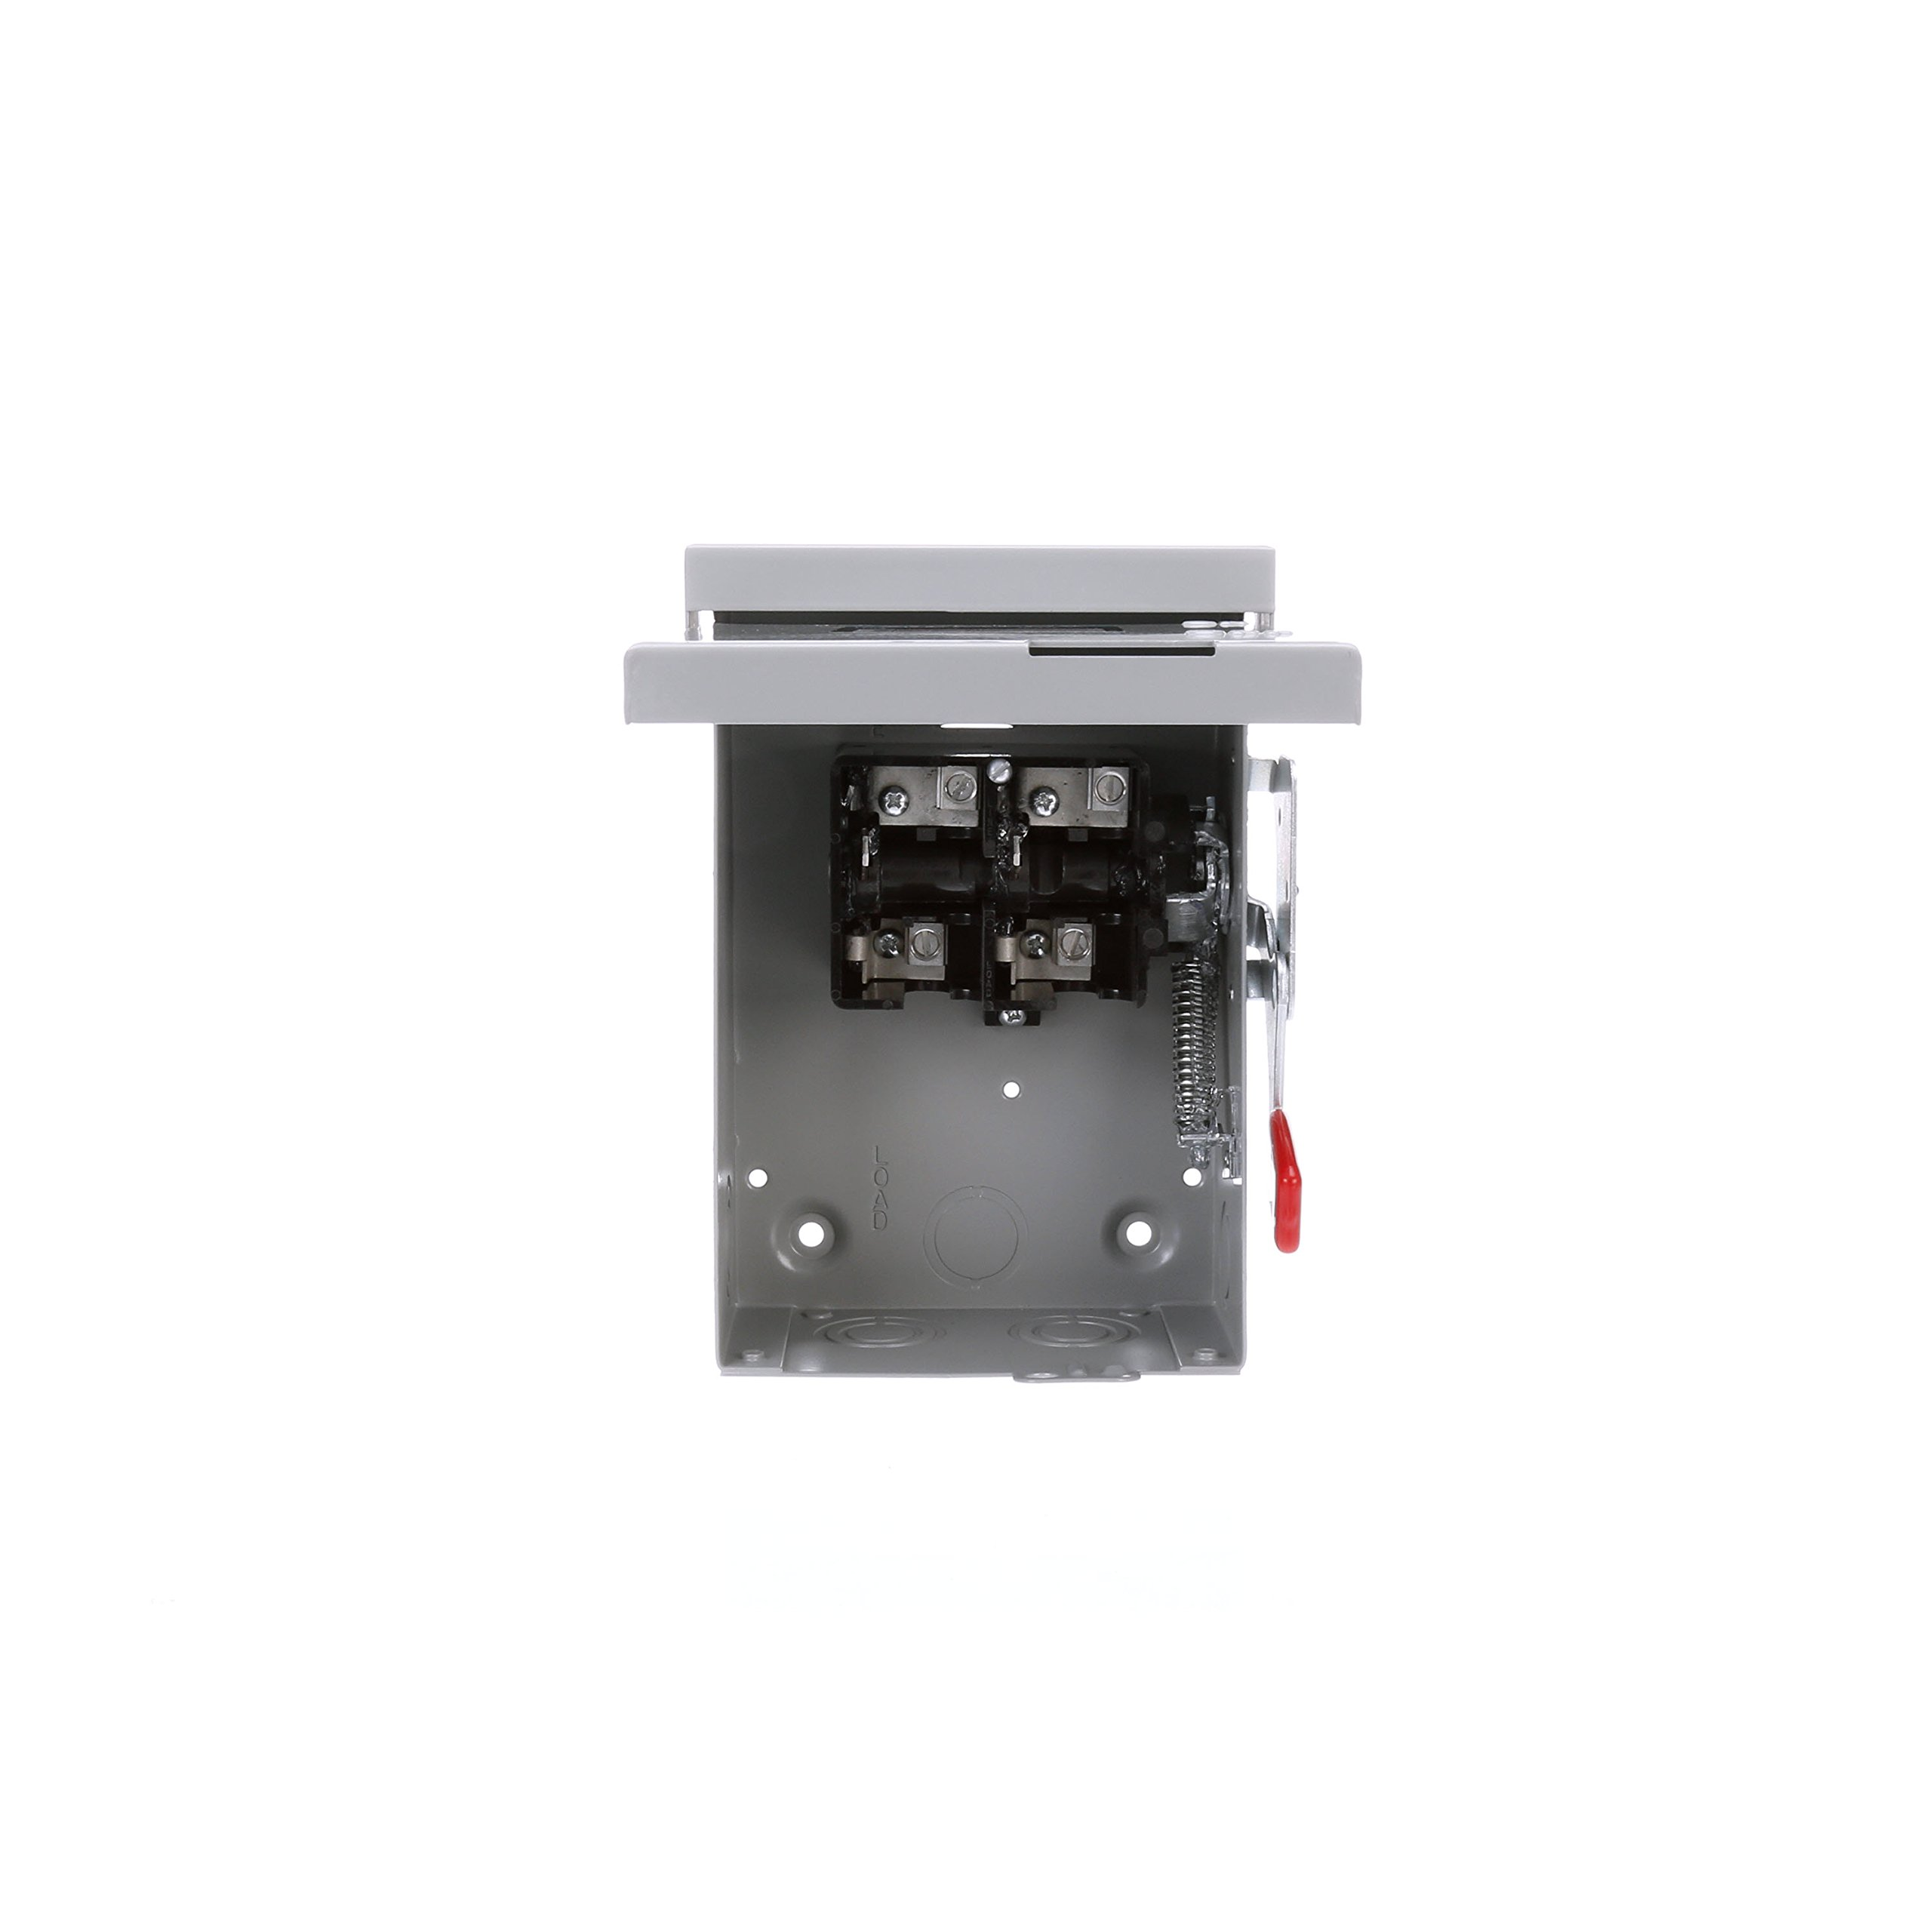 SIEMENS LNF222R 60 Amp, 2 Pole, 240-Volt, Non-Fused, Outdoor Rated